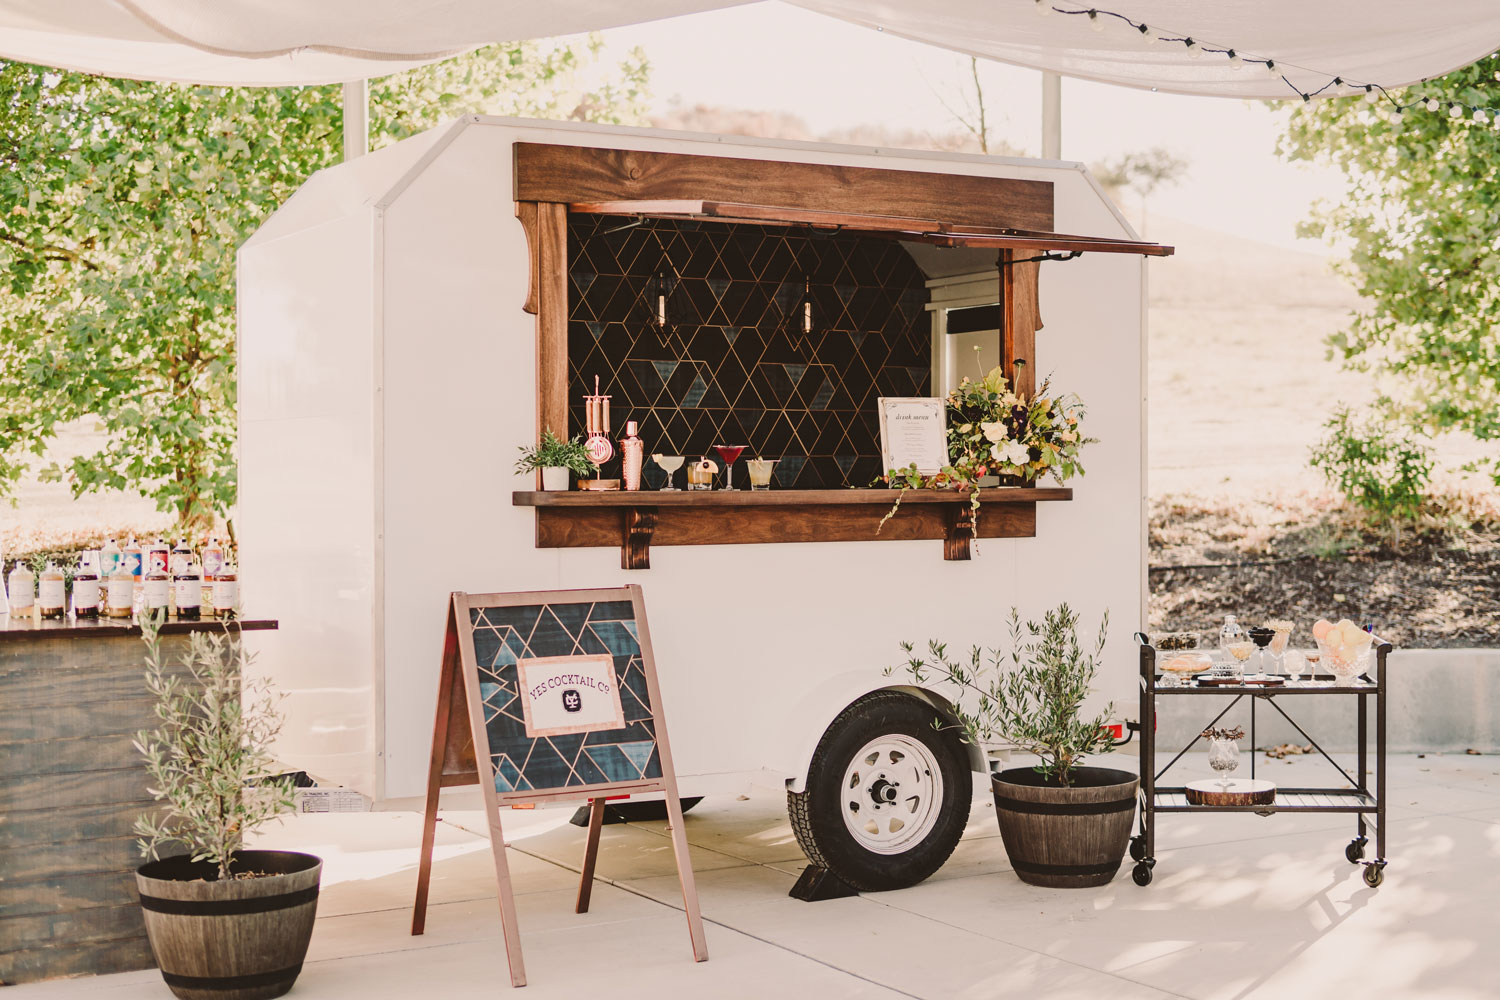 The Charlotte Mobile Wedding Bar by Yes Cocktail Co.